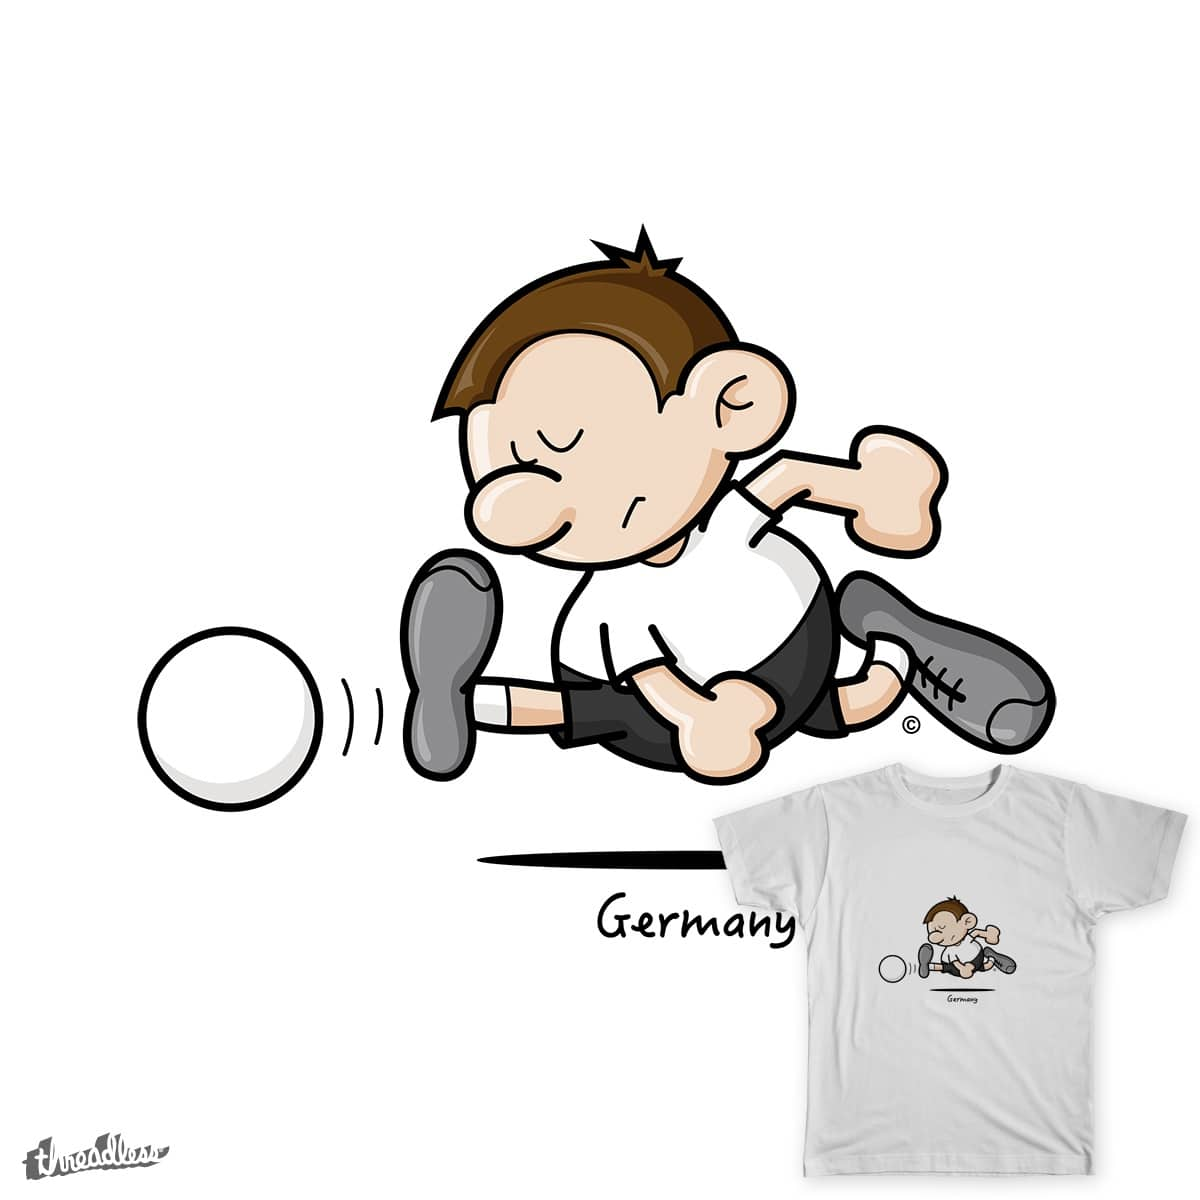 2014 World Cup Cartoons - Germany by spaghettiarts on Threadless